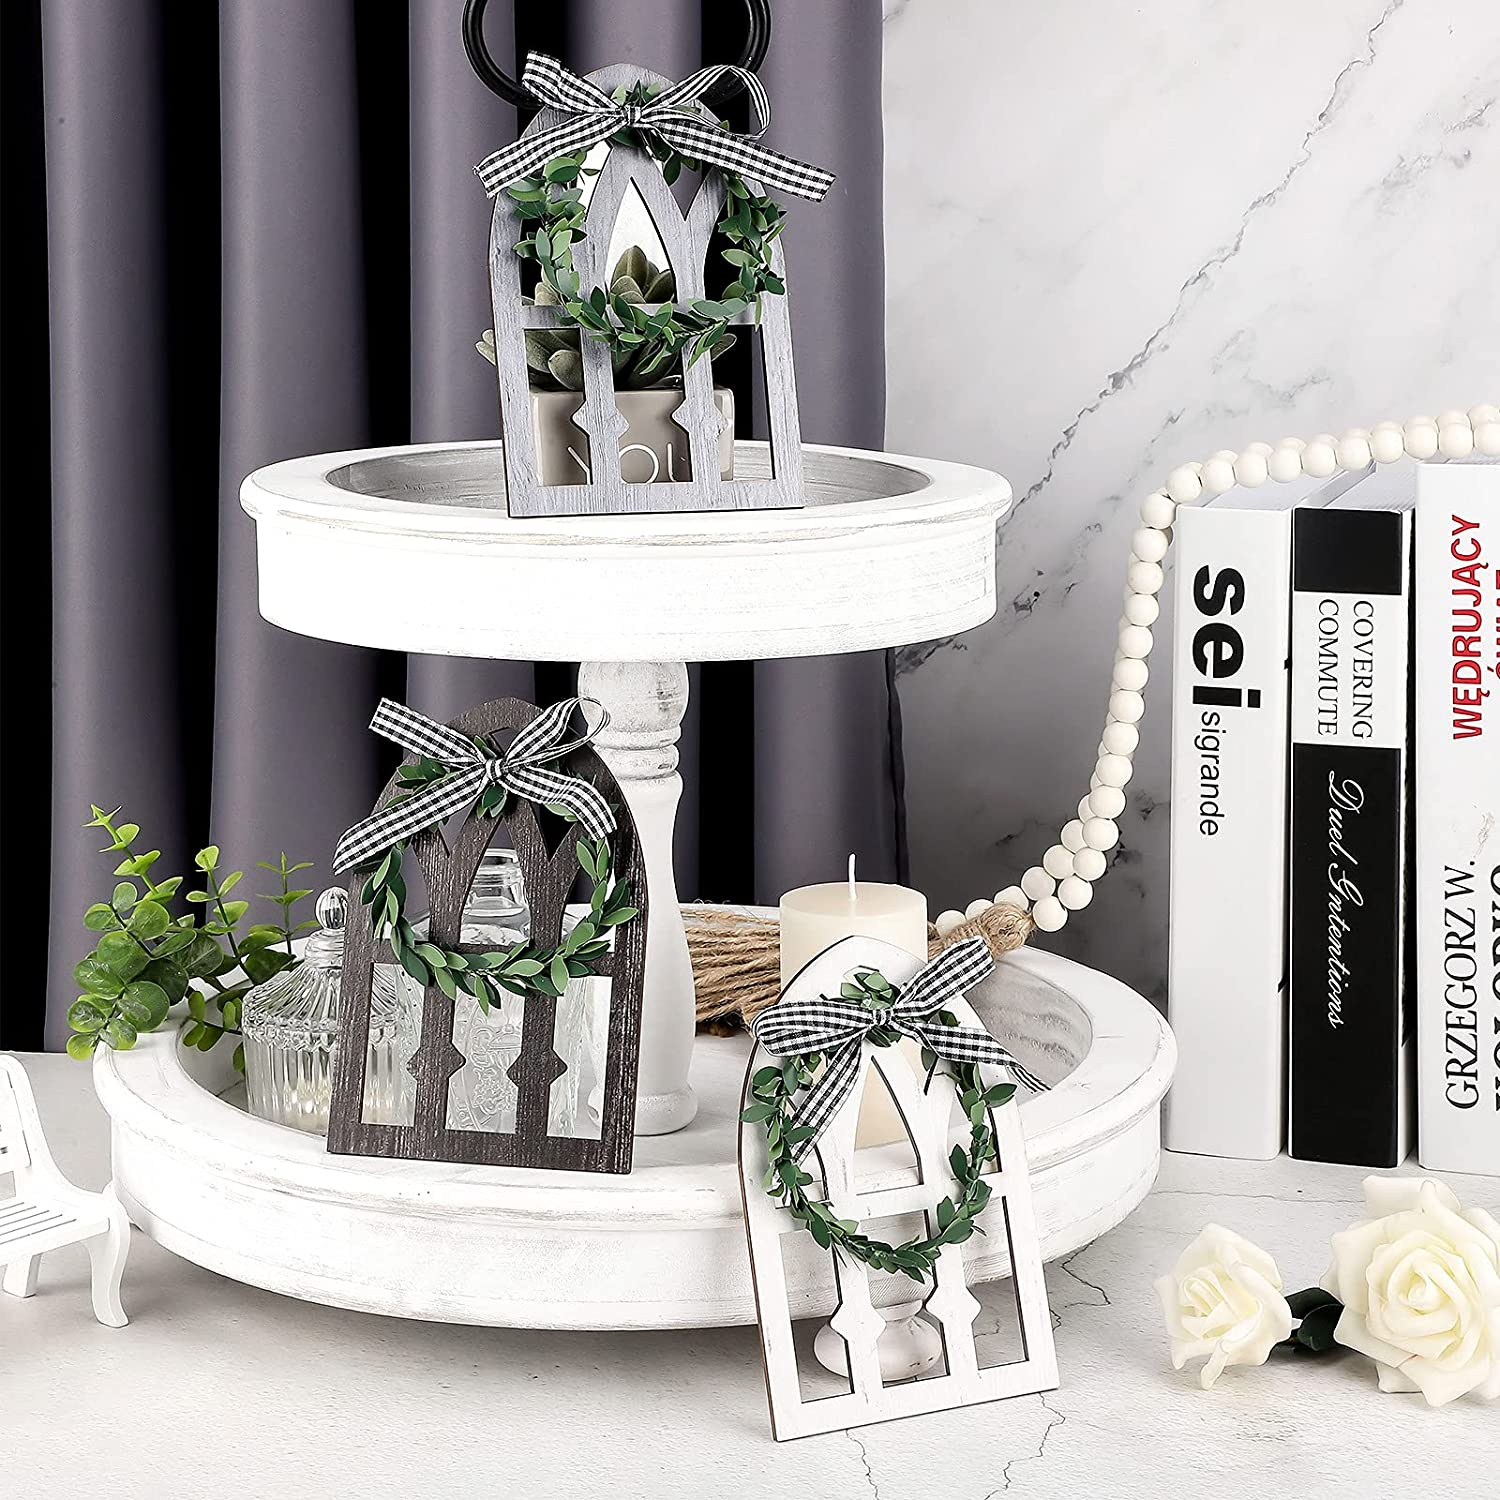 3 Pieces Wooden Farmhouse Window Tiered Tray Decoration Black and White Plaid Rustic Farmhouse Decor Wooden Rustic Mount Window Frames Vintage Country Farmhouse Wall Decor (Textured Colors)